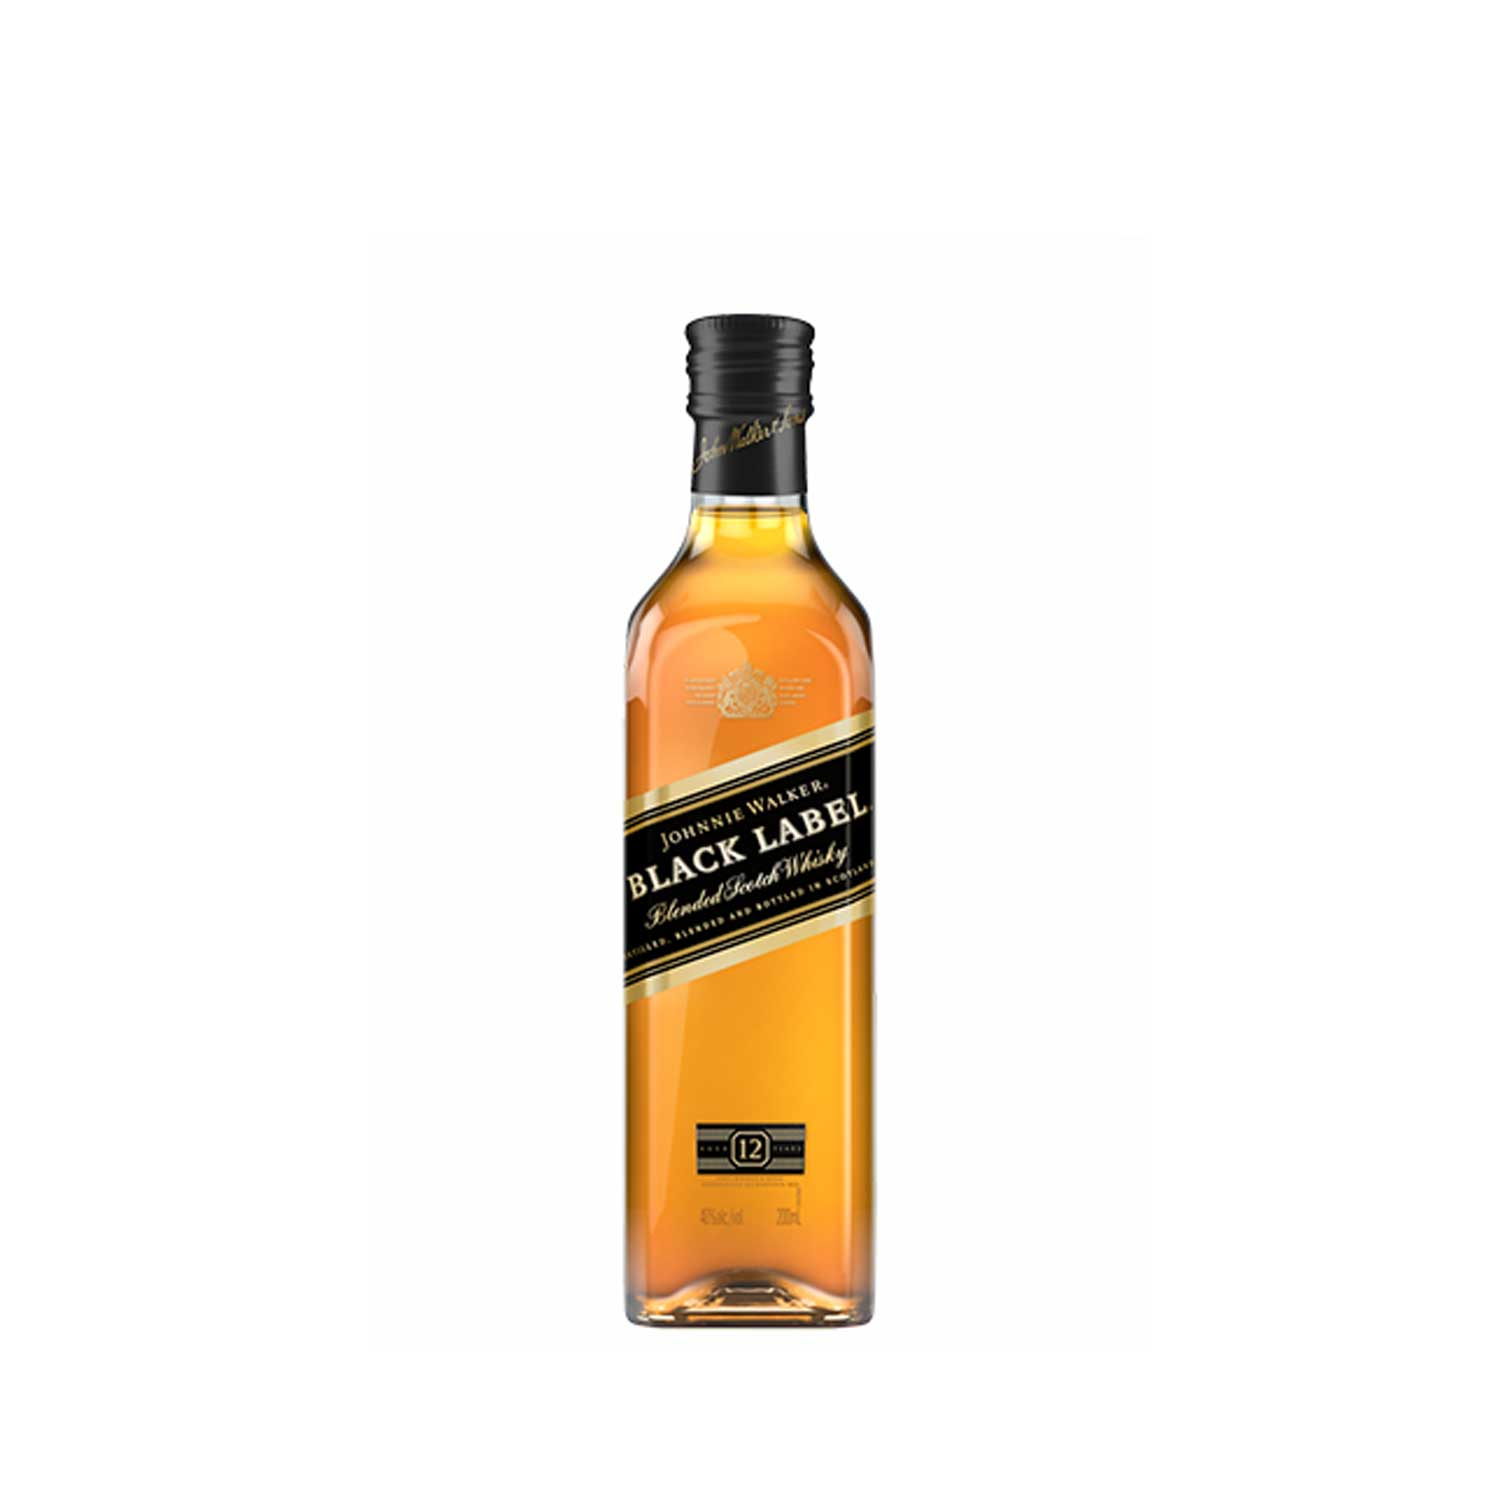 JOHNNIE WALKER BLACK LABEL, 20CL